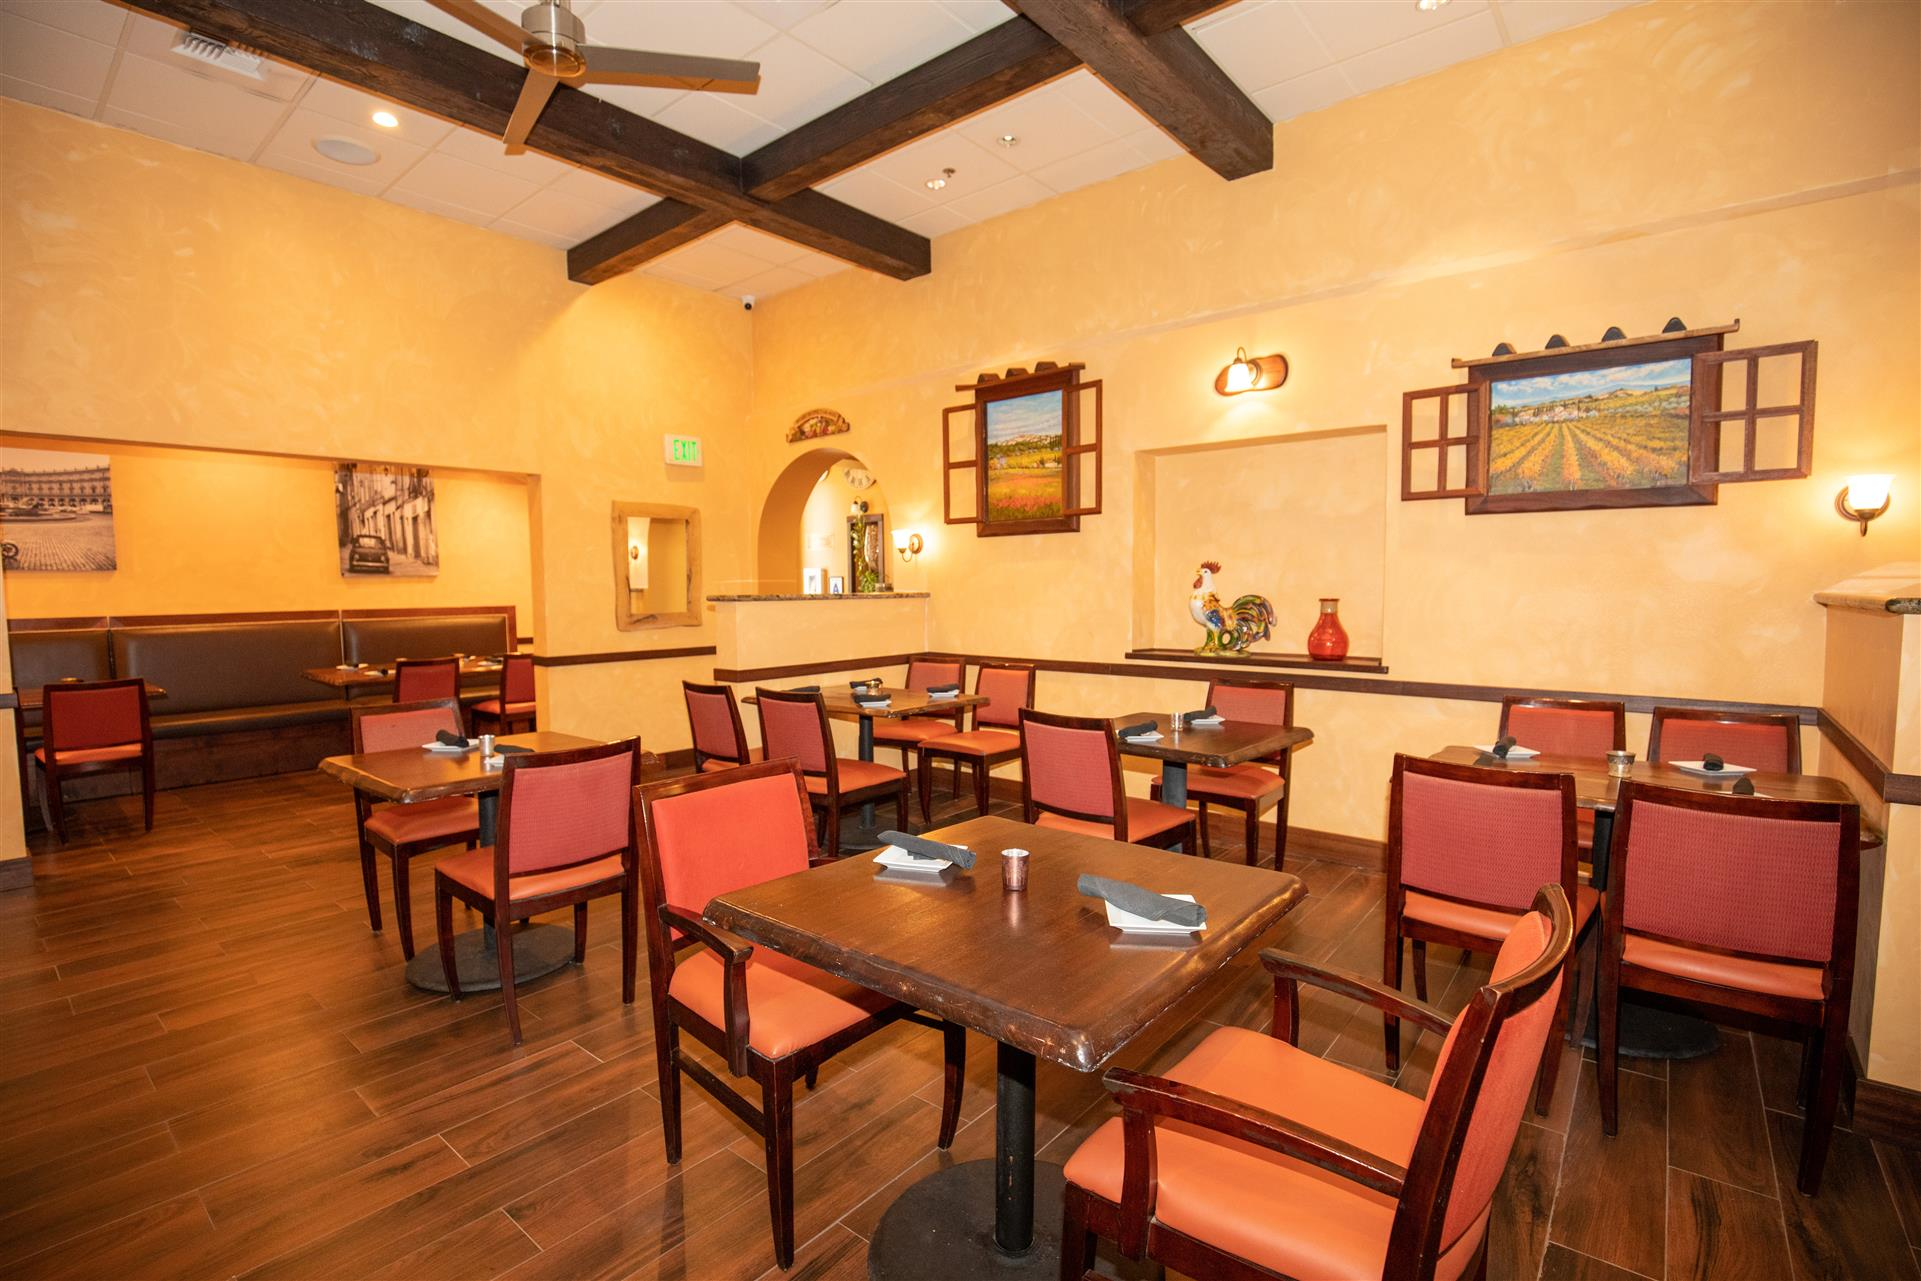 Dining area inside of Trattoria Toscana Italian Restaurant with tables and chairs.